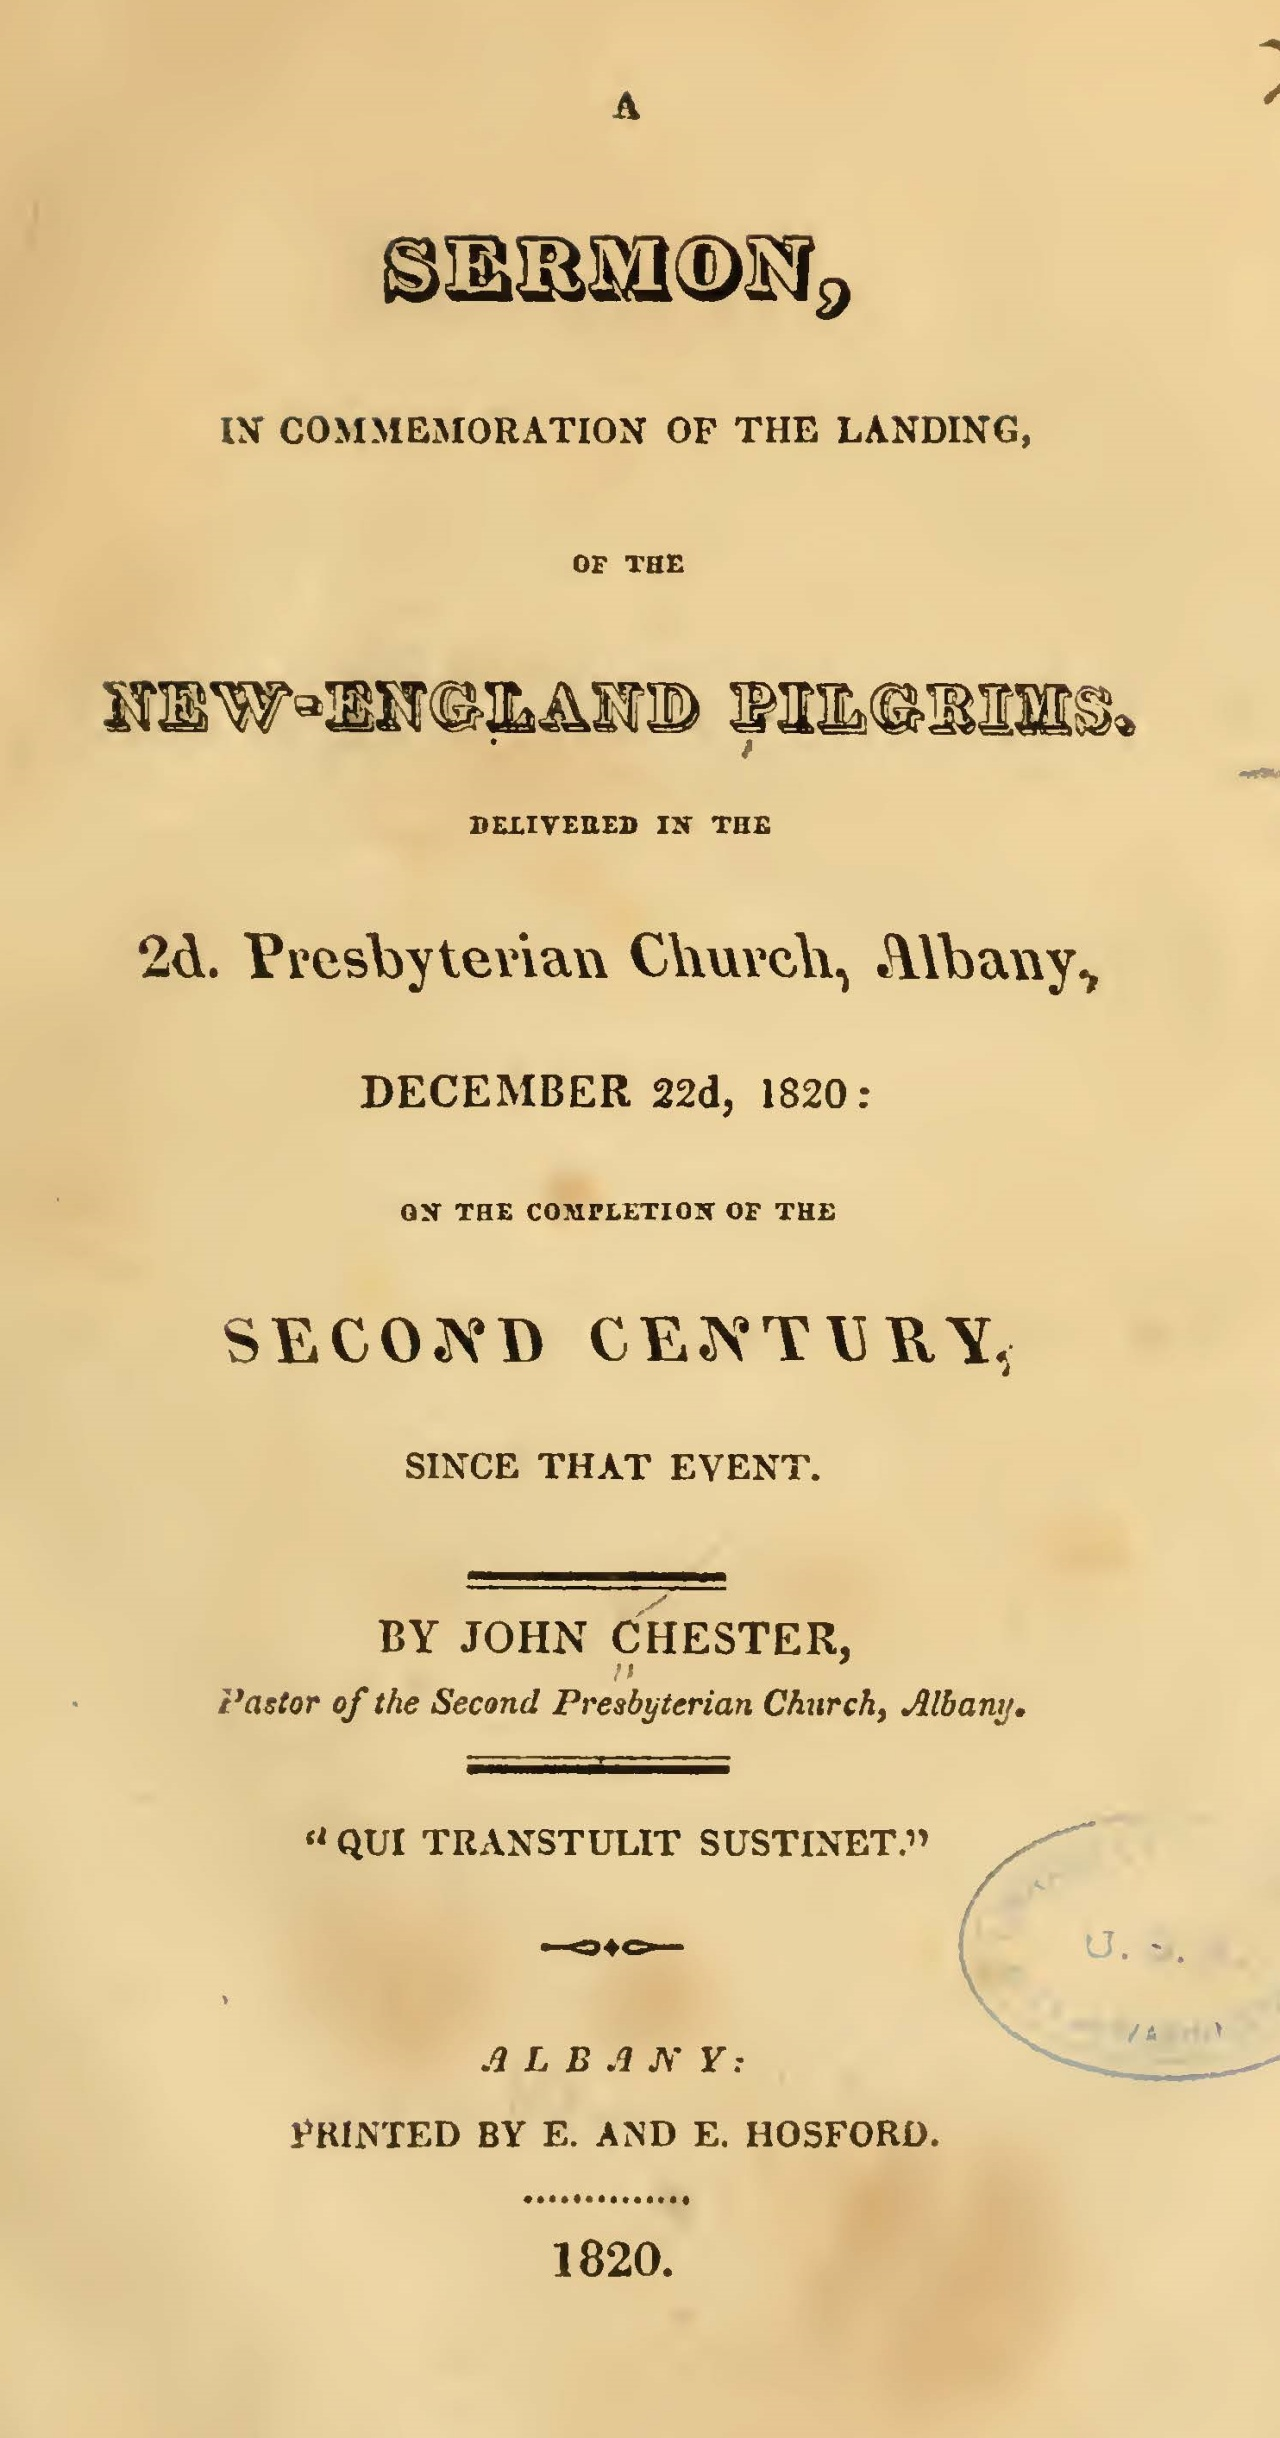 Chester, John, A Sermon in Commemoration of the Landing of the New-England Pilgrims Title Page.jpg